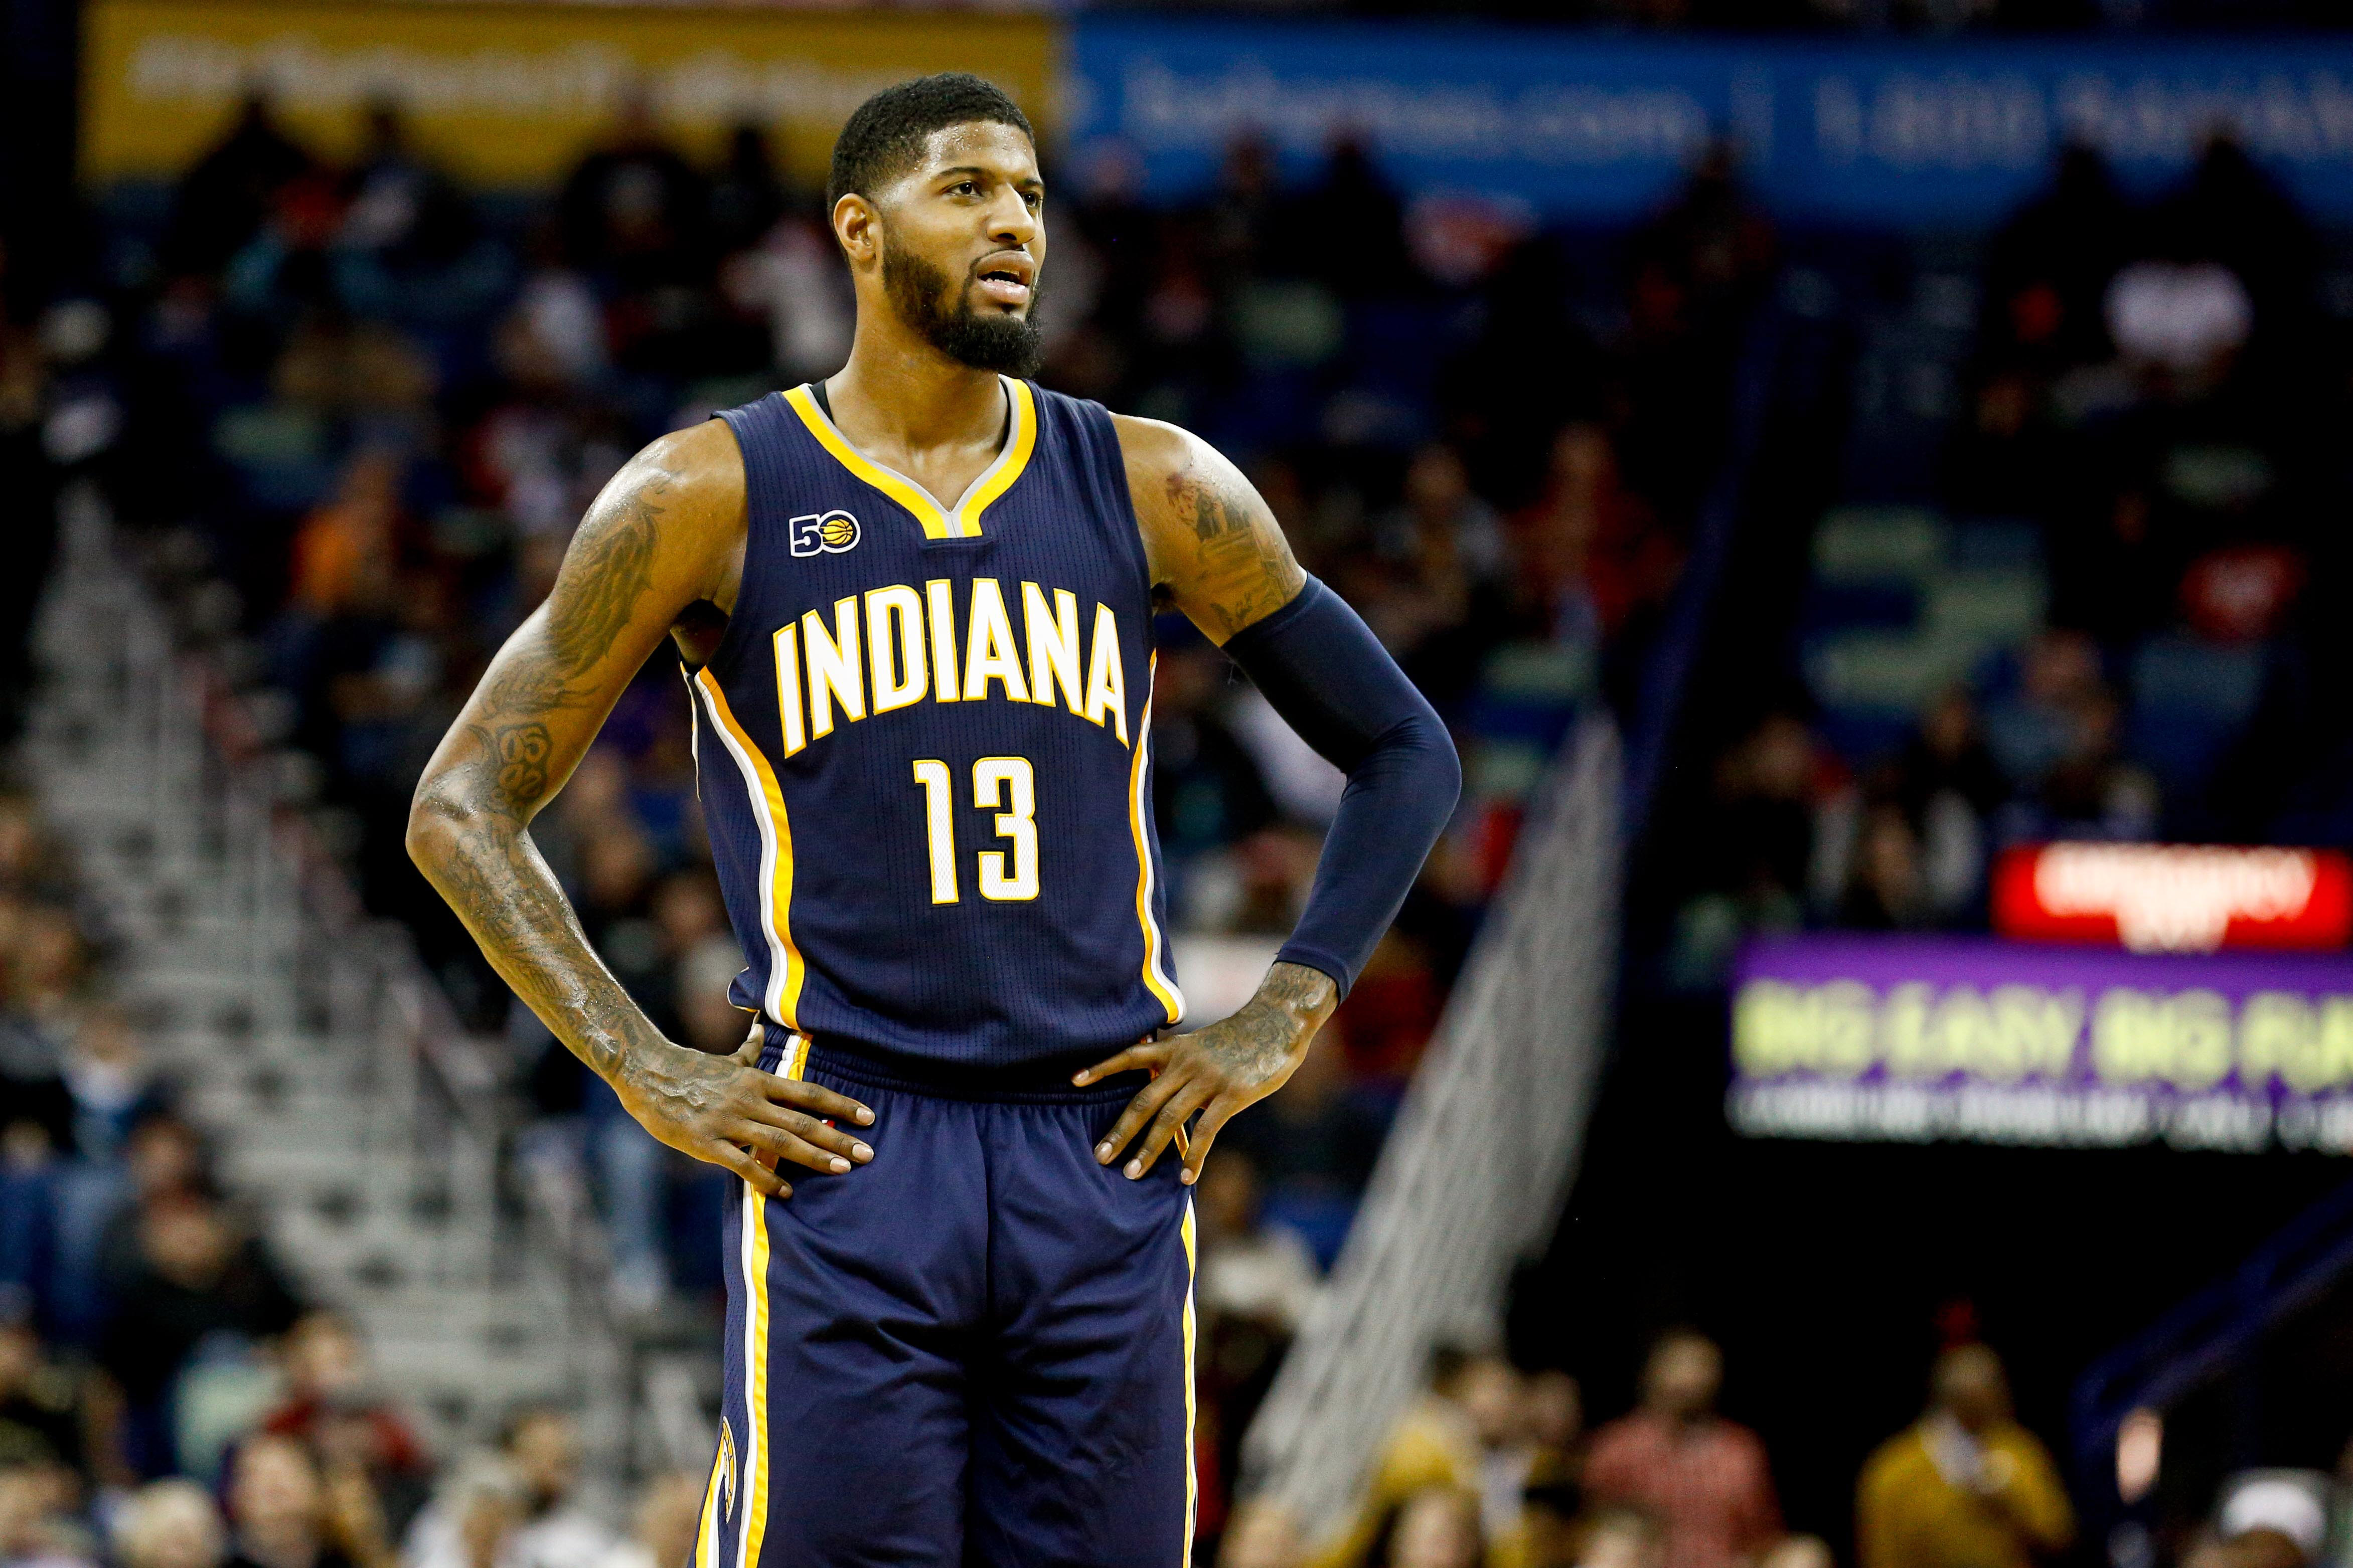 9747902-nba-indiana-pacers-at-new-orleans-pelicans